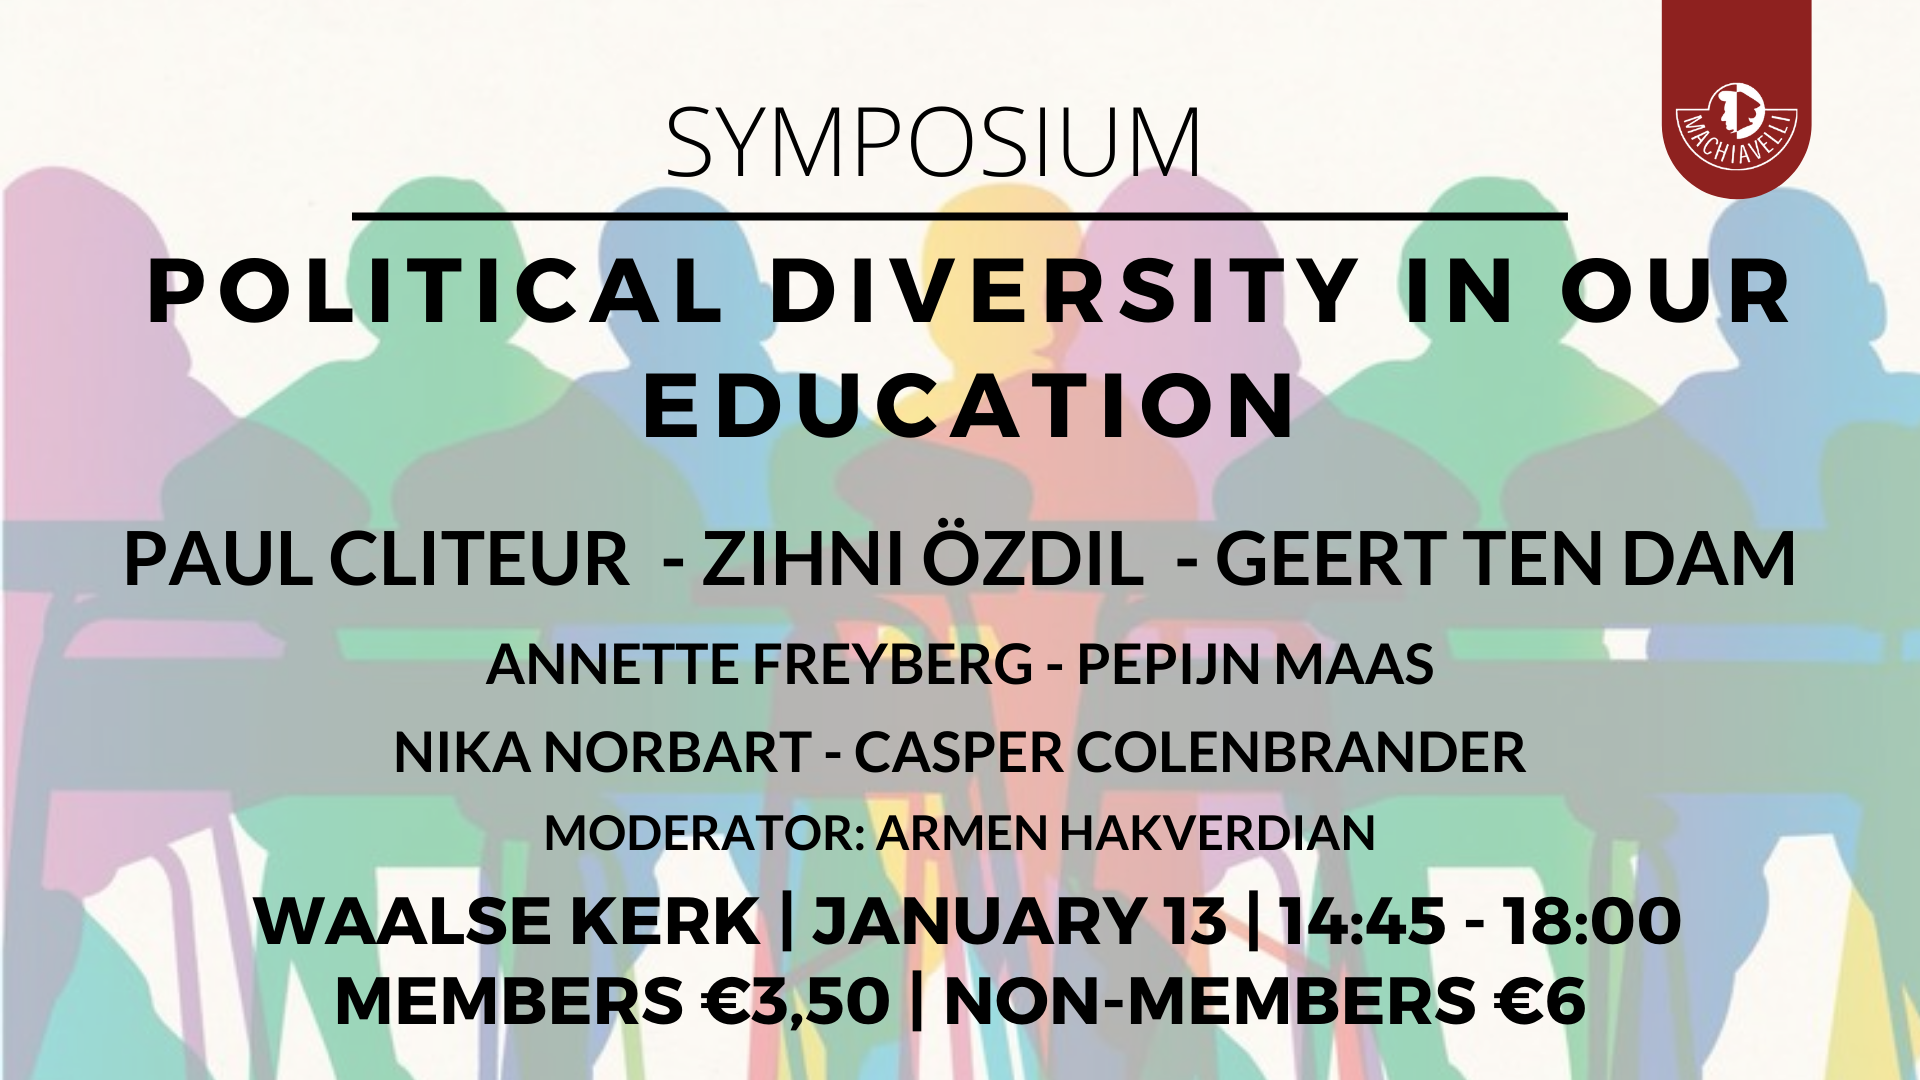 Symposium - Political Diversity in our Education